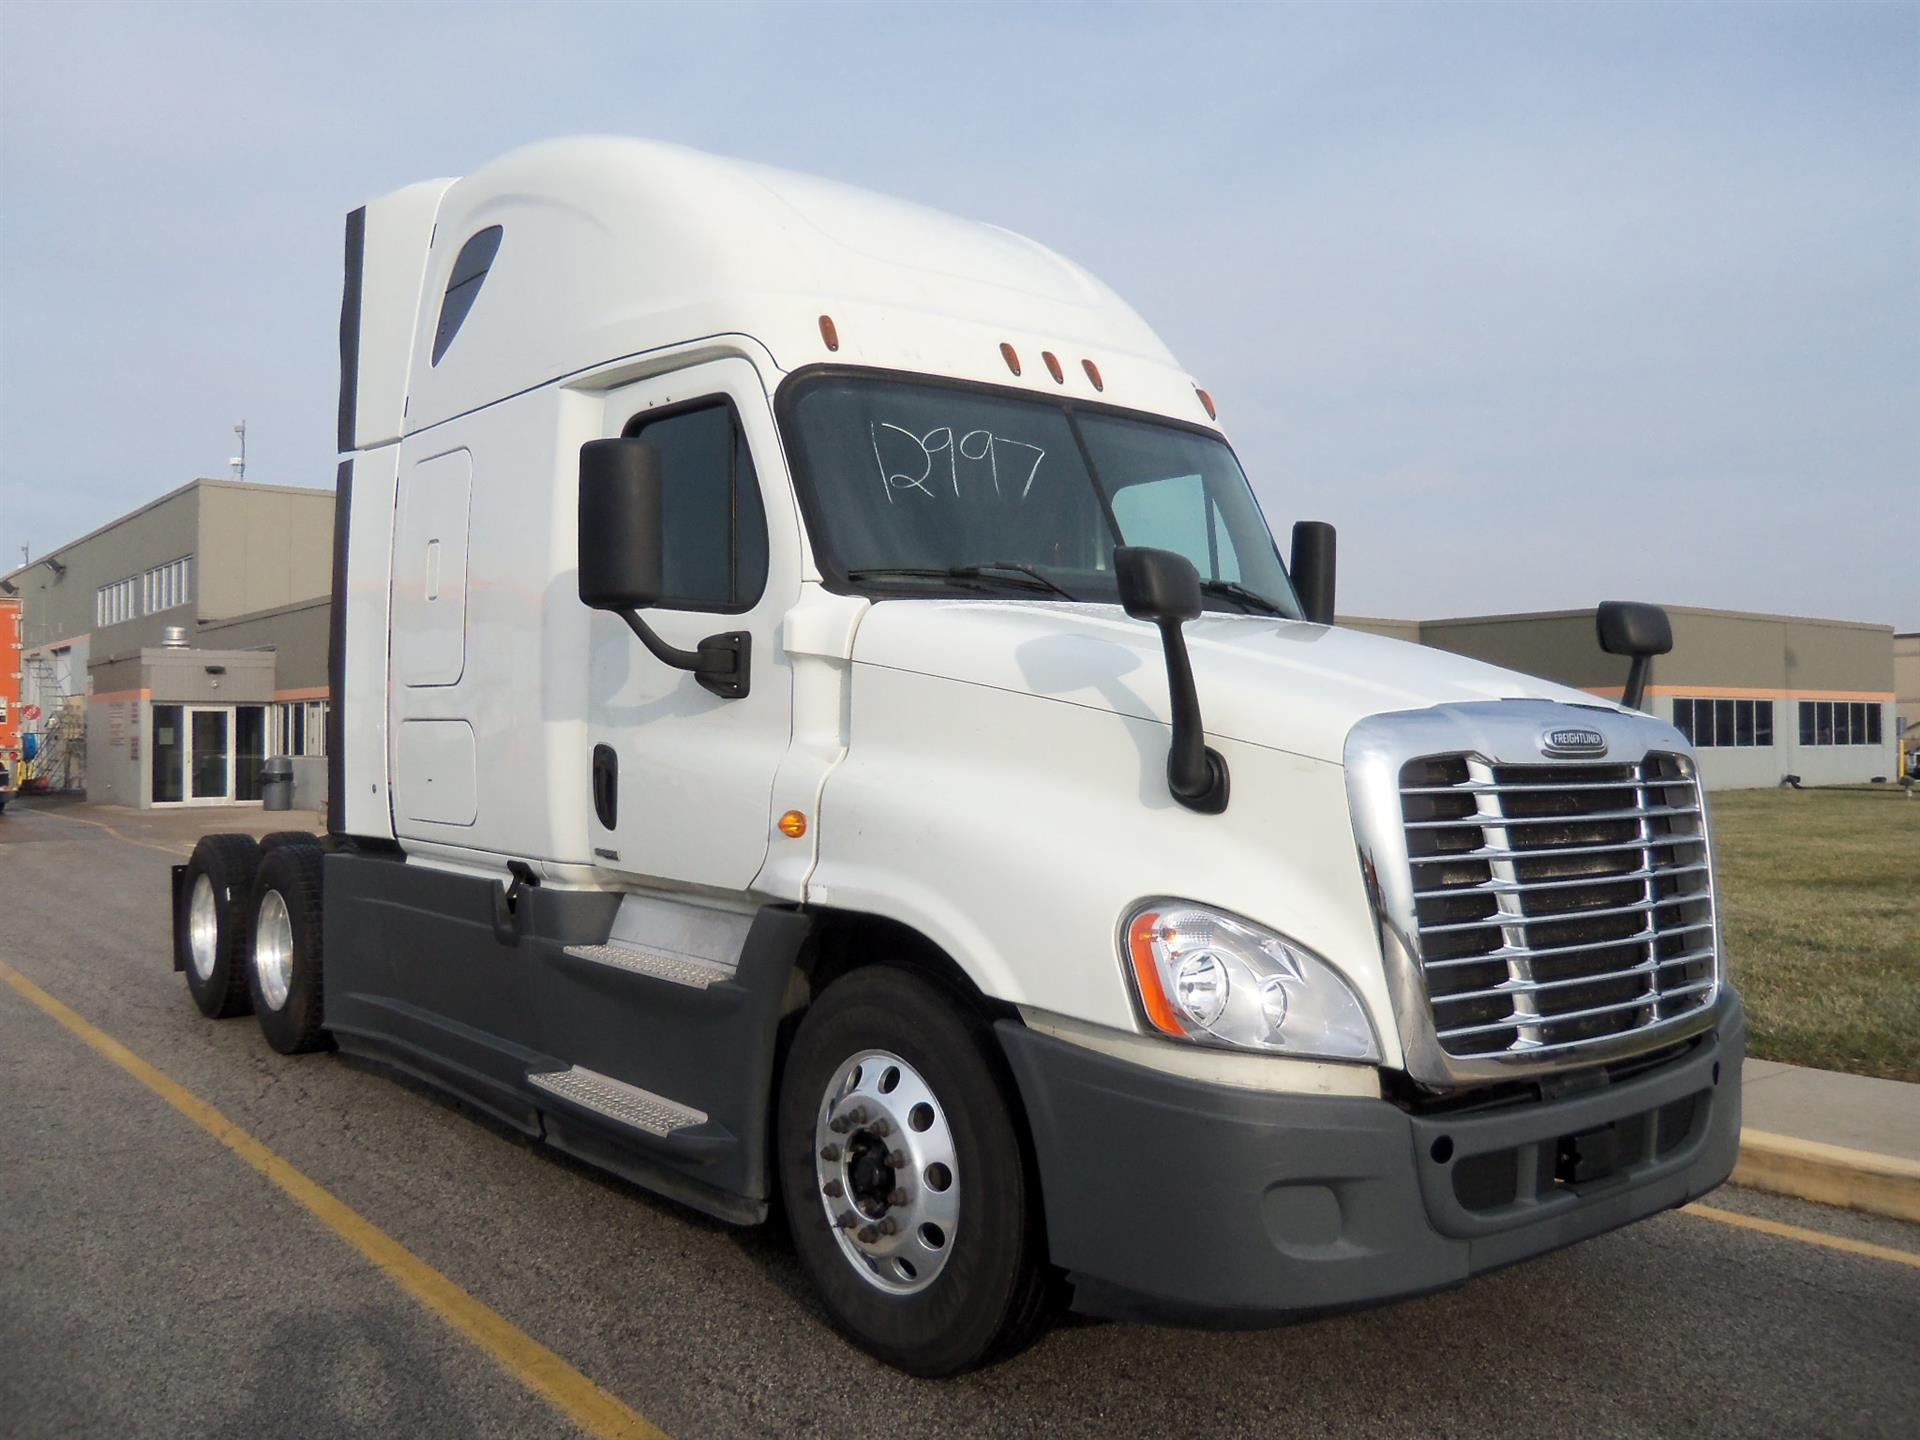 USED 2015 FREIGHTLINER CASCADIA SLEEPER TRUCK #136981